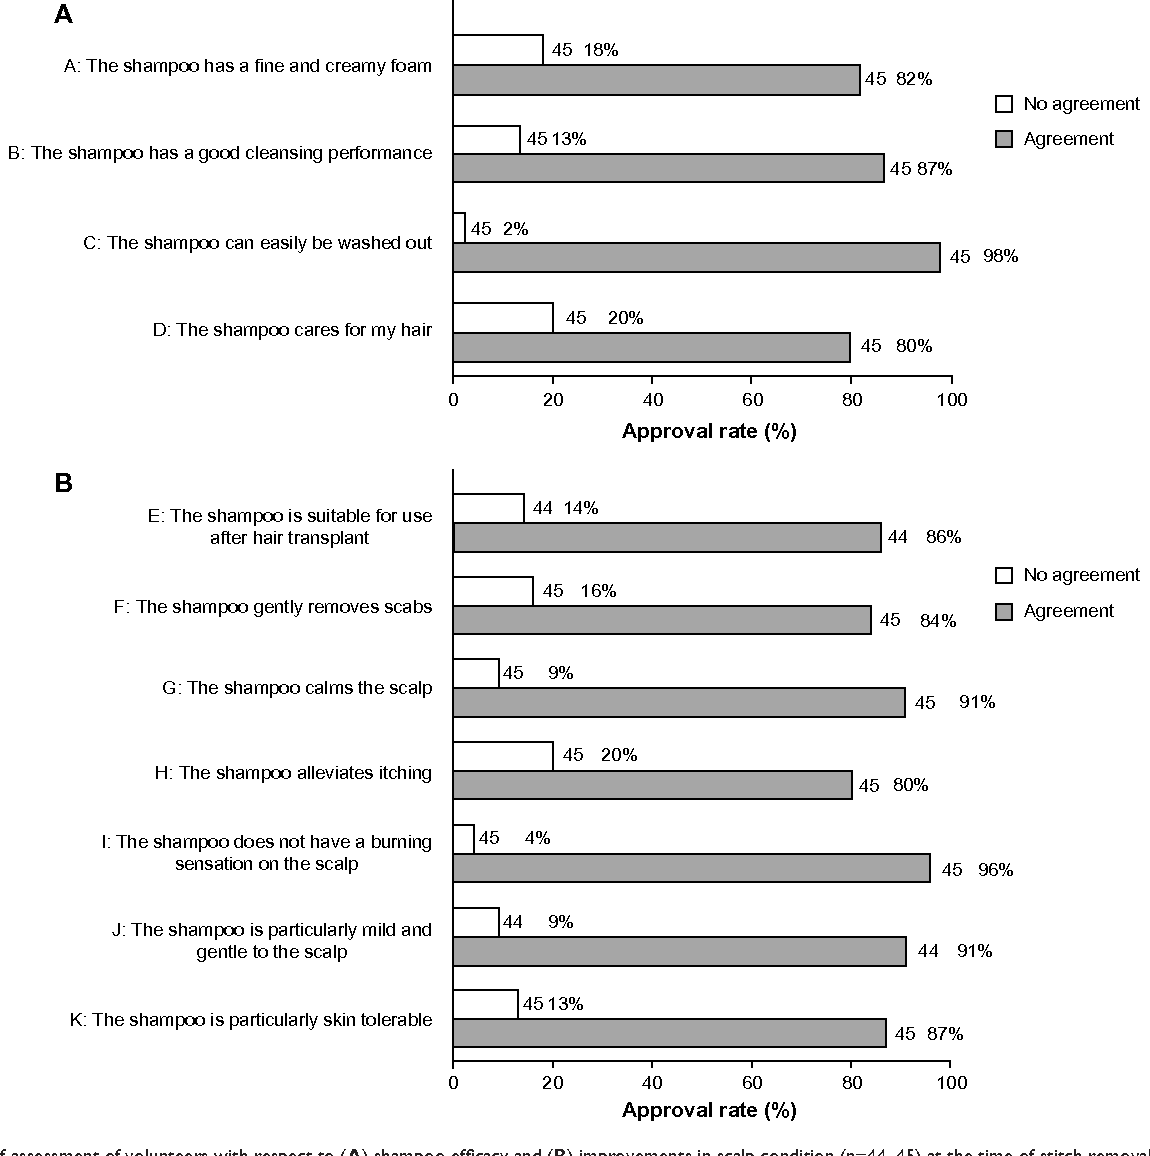 Figure 3 self-assessment of volunteers with respect to (A) shampoo efficacy and (B) improvements in scalp condition (n=44–45) at the time of stitch removal. Notes: Shown is the approval rate (%) for each statement. All statements were confirmed with statistical evidence.